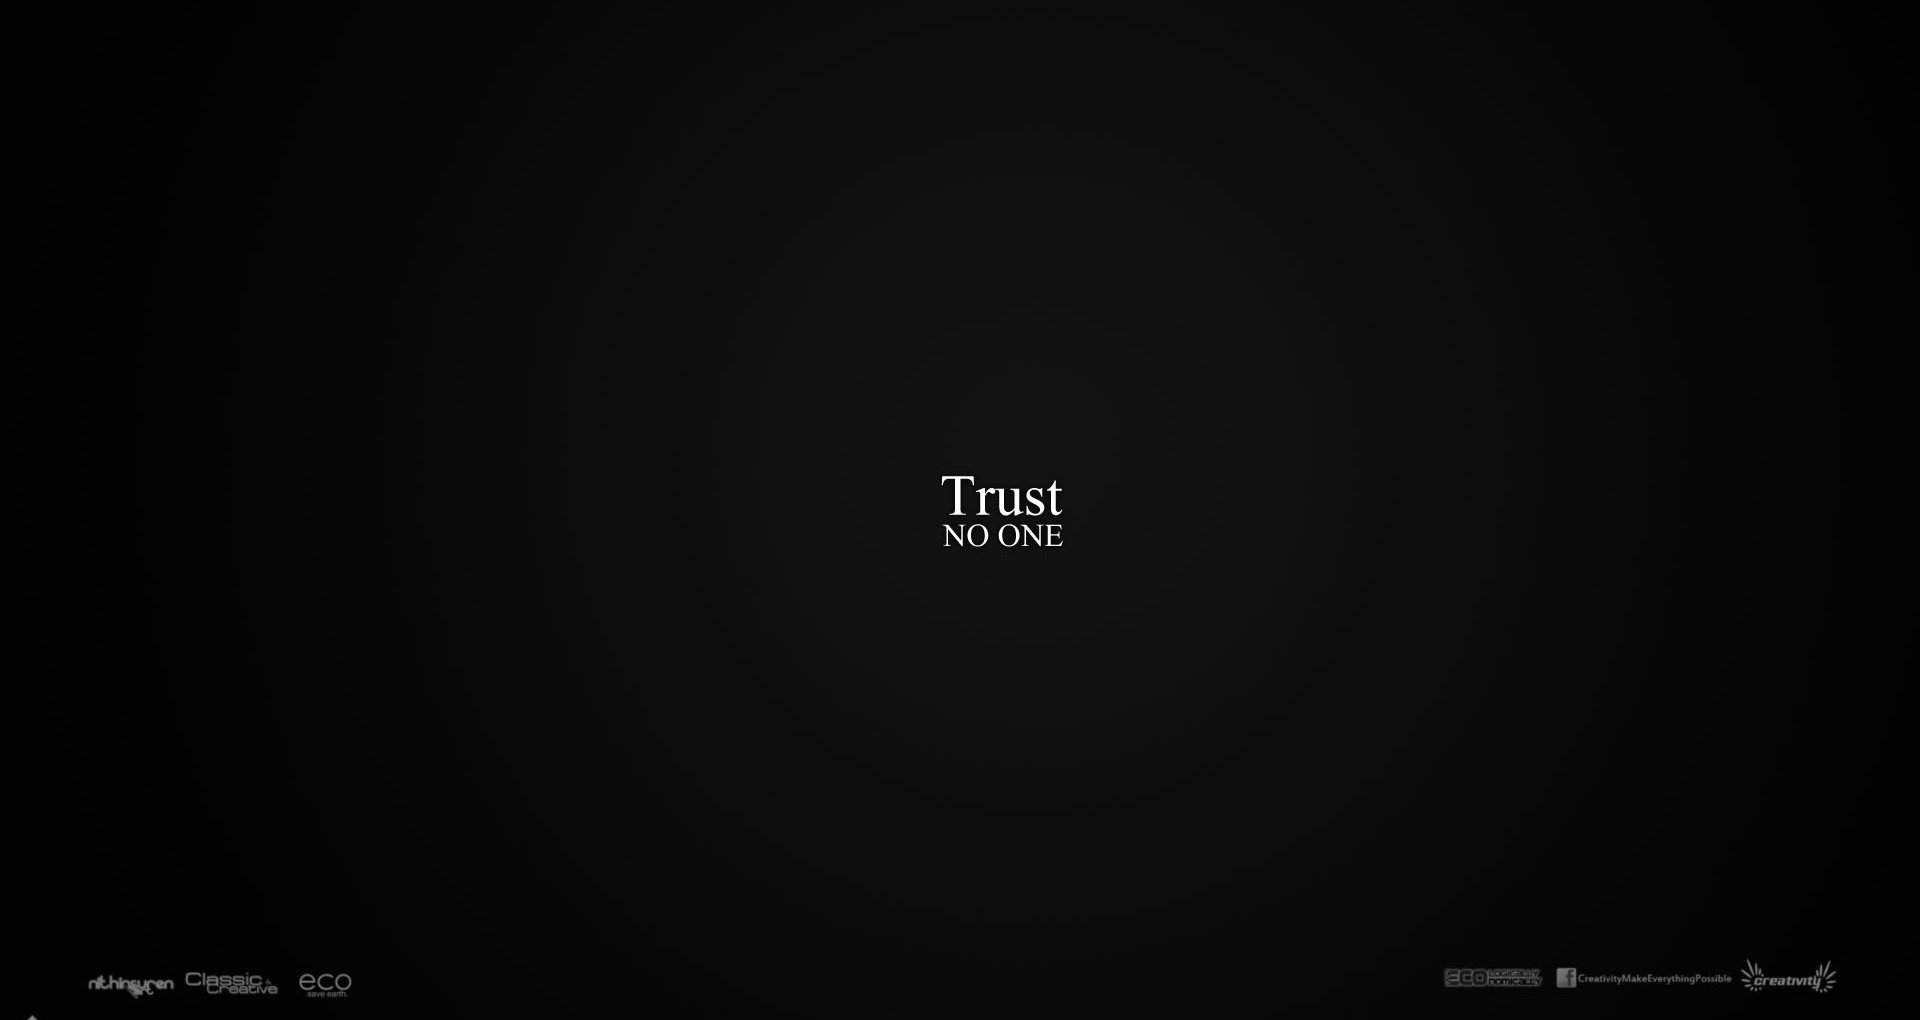 trust no one - walldevil